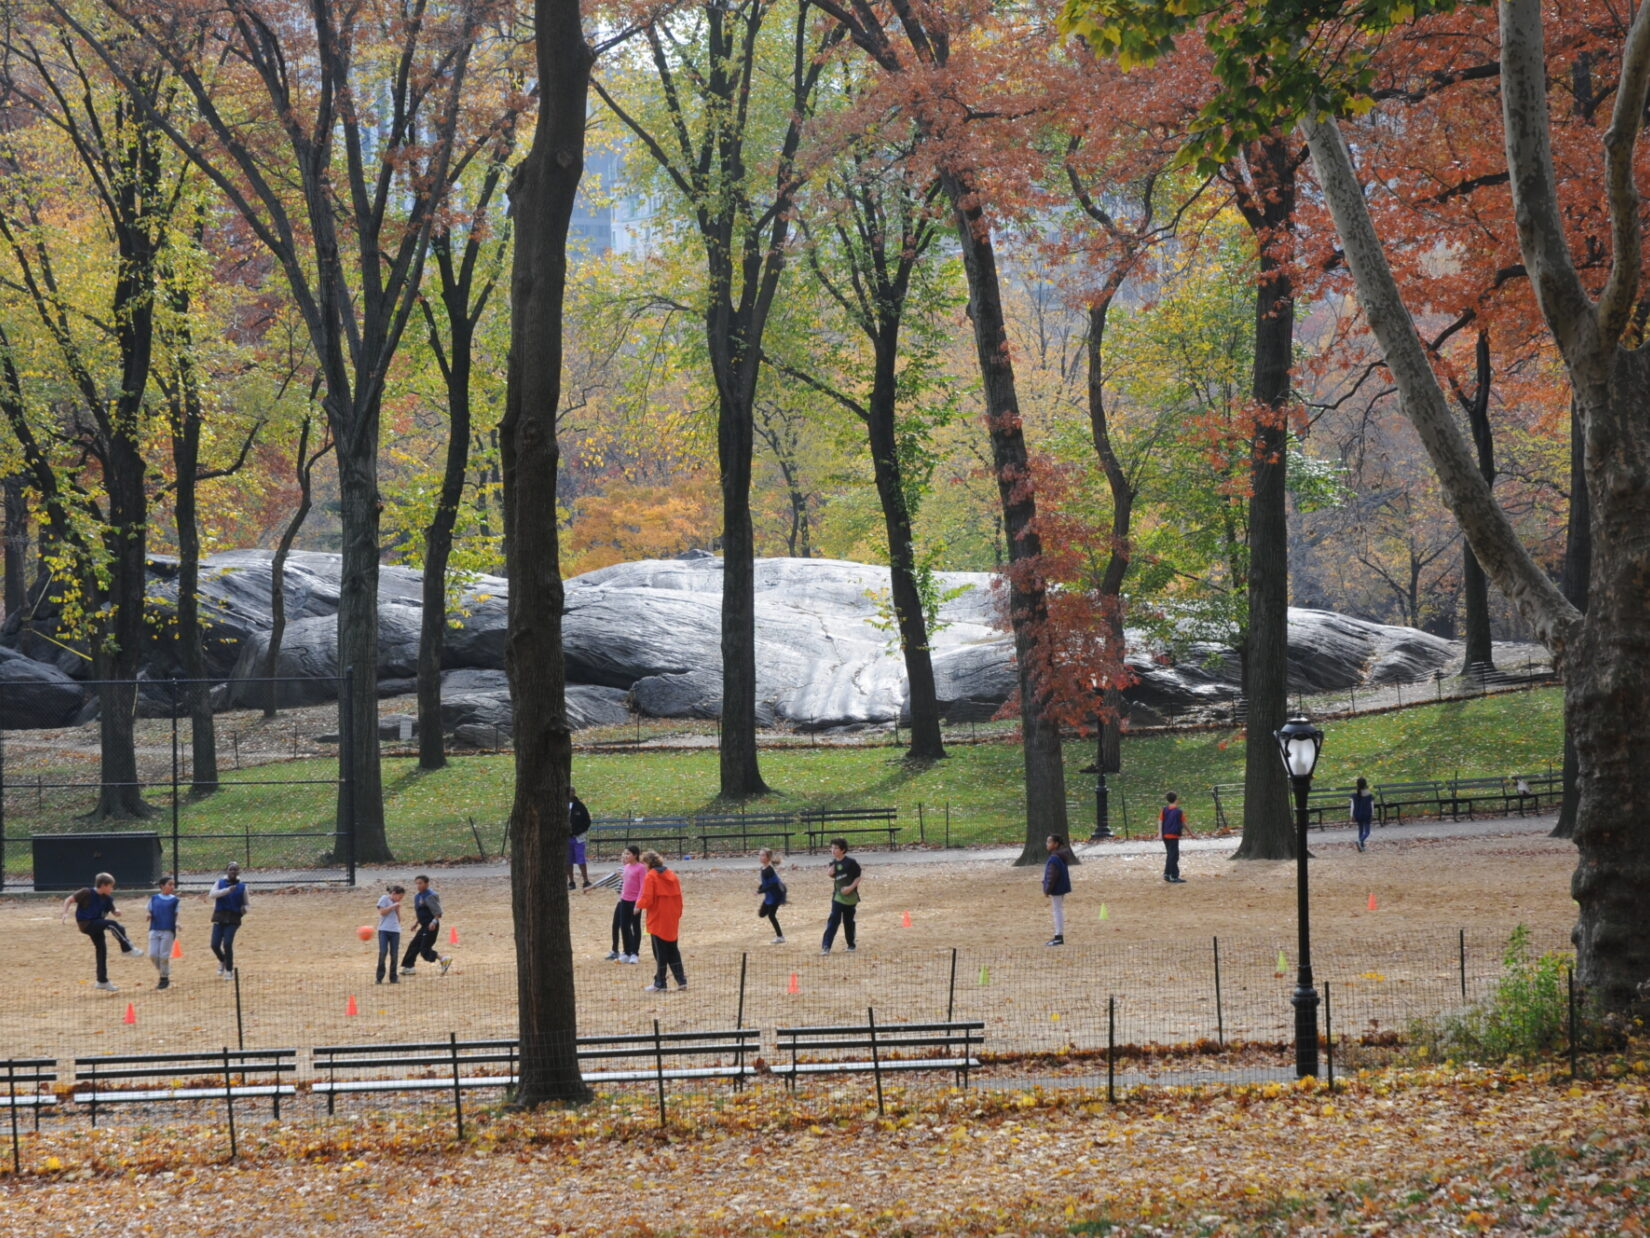 An autumn scene of a group of children playing at Heckscher Ballfield